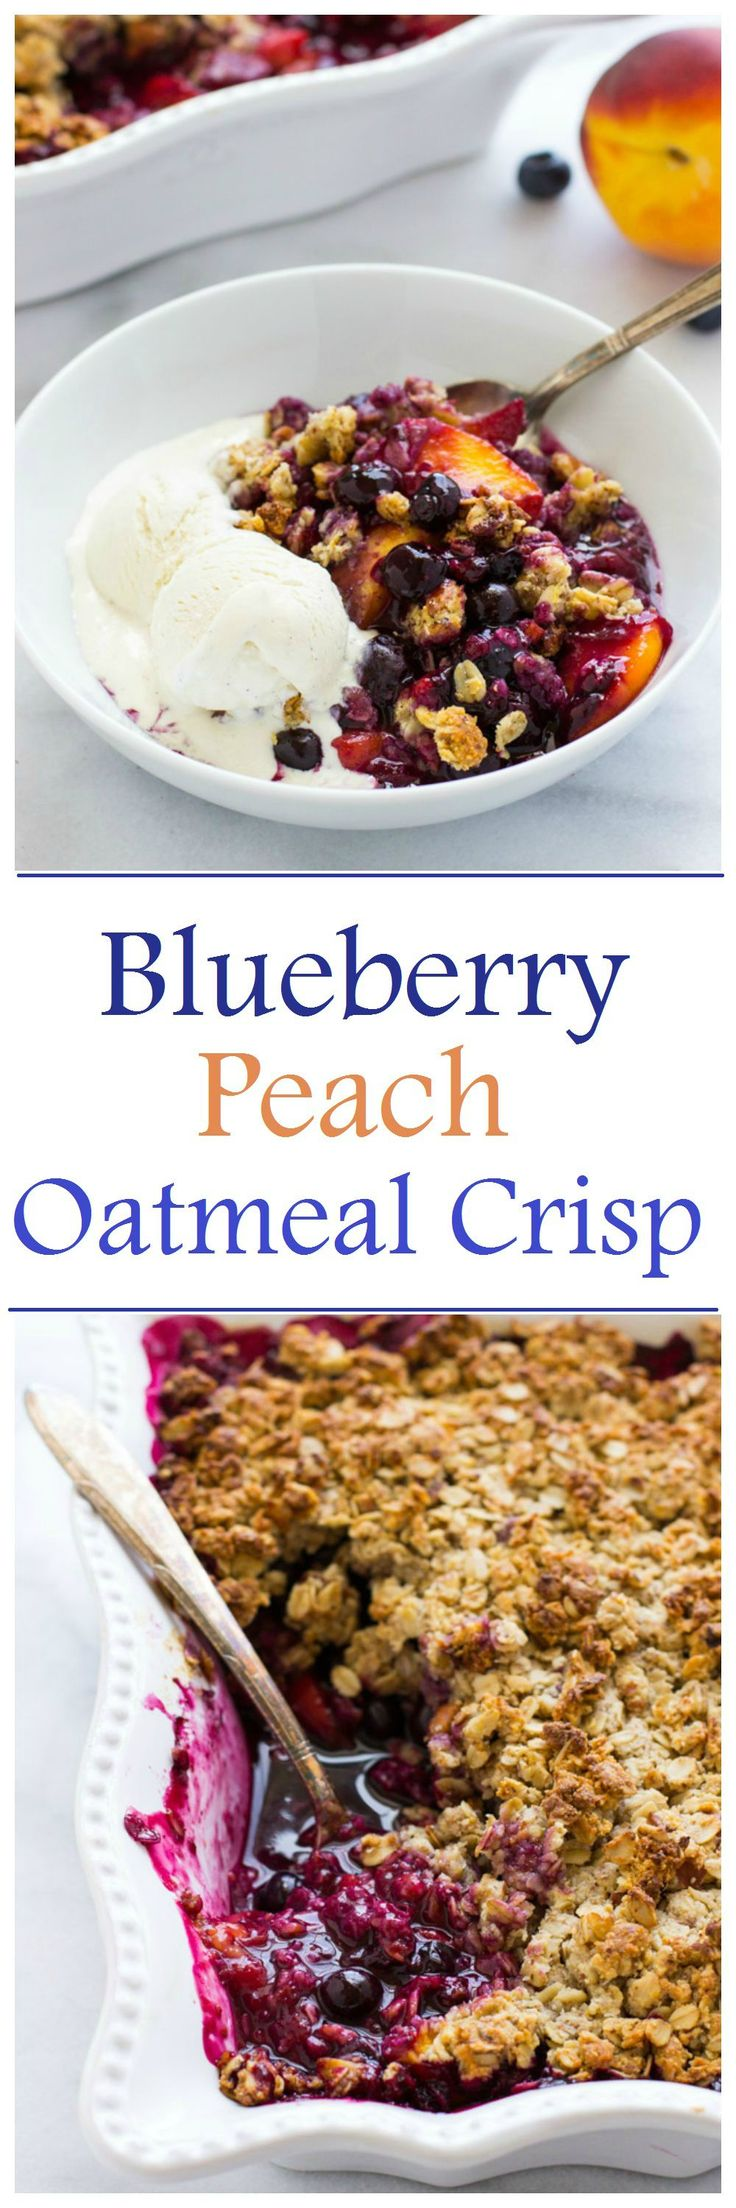 Blueberry Peach Oatmeal Crisp- the perfect summer dessert! #refinedsugarfree #glutenfree #dairyfree